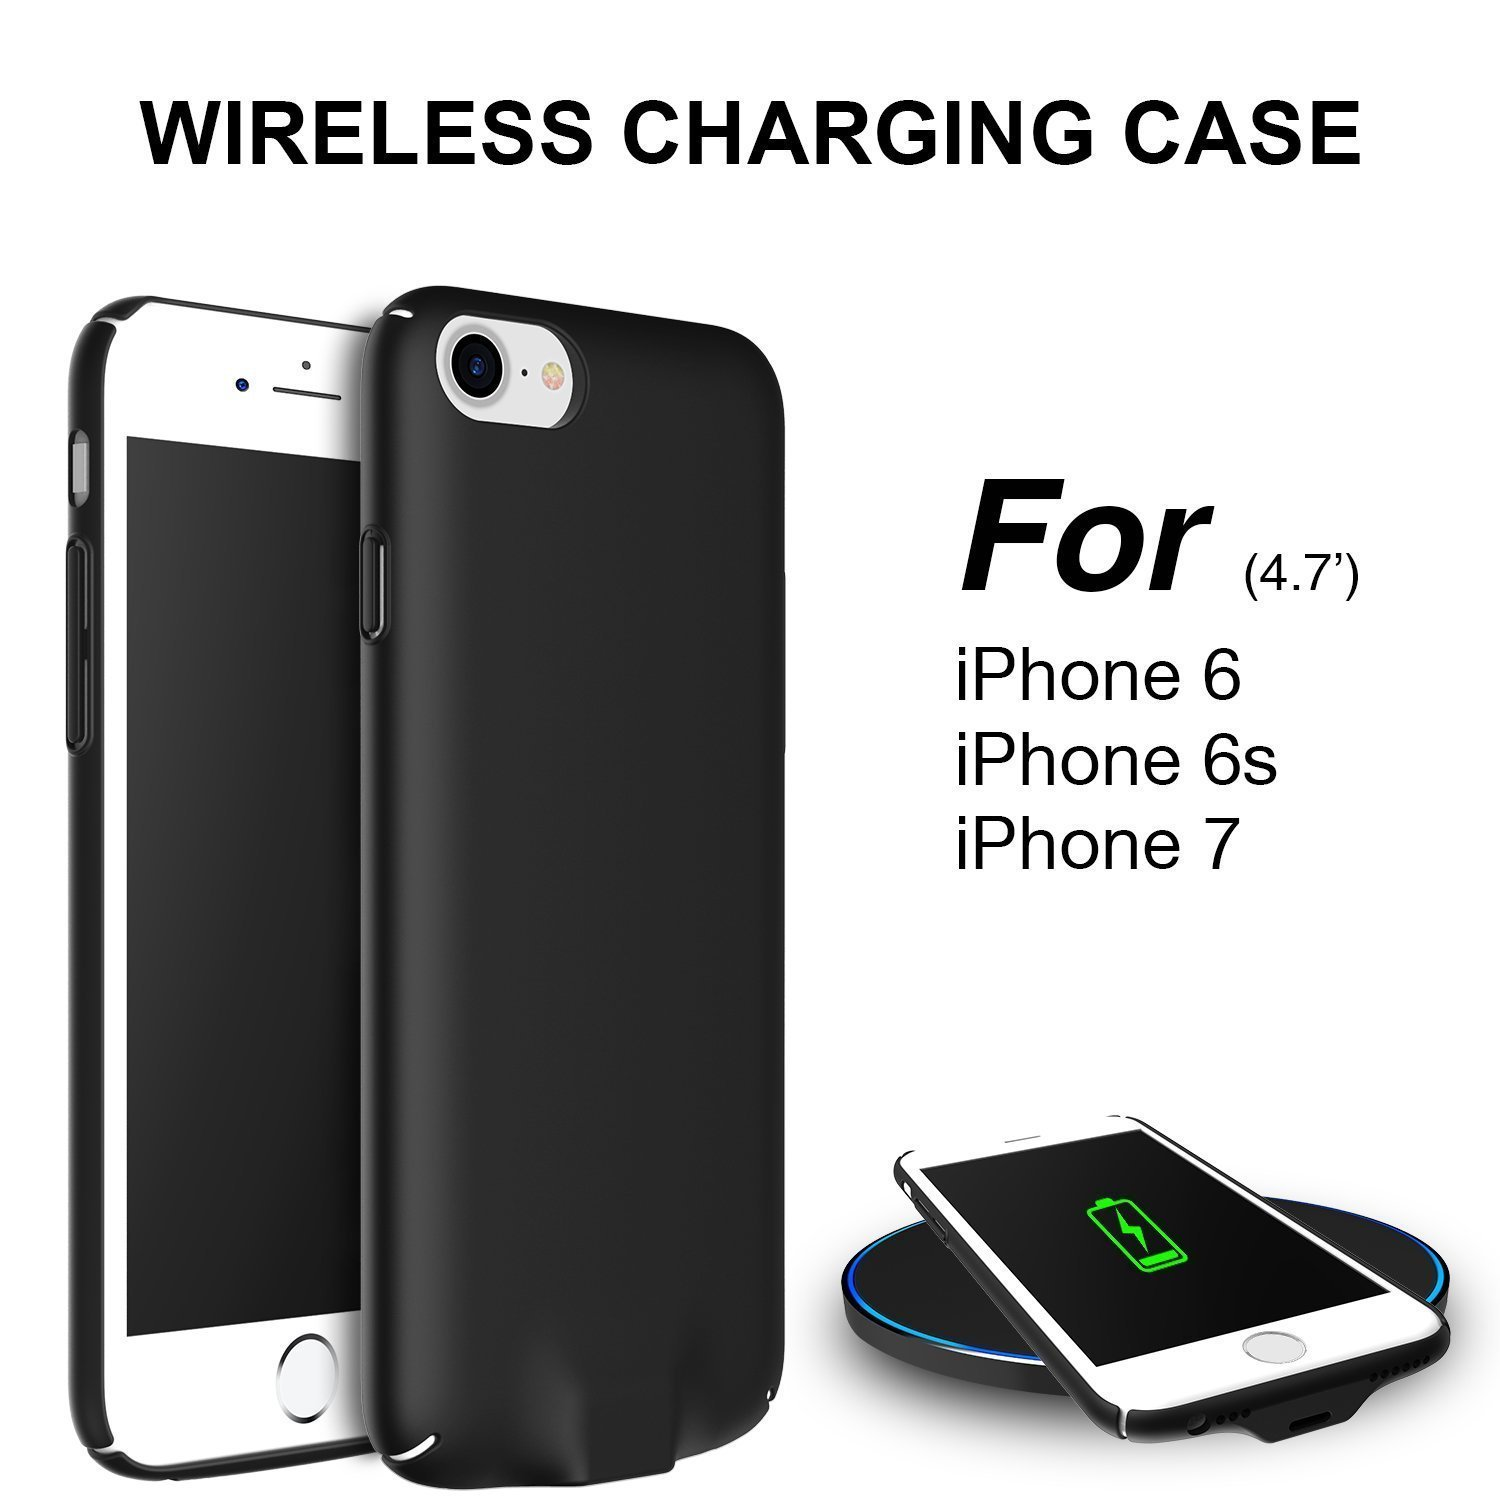 Hoidokly Funda iPhone Qi Receptor Wireless Charging Receiver Case Cargador Inalambrico para iPhone 6s / iPhone 6 - 4,7 Pulgadas